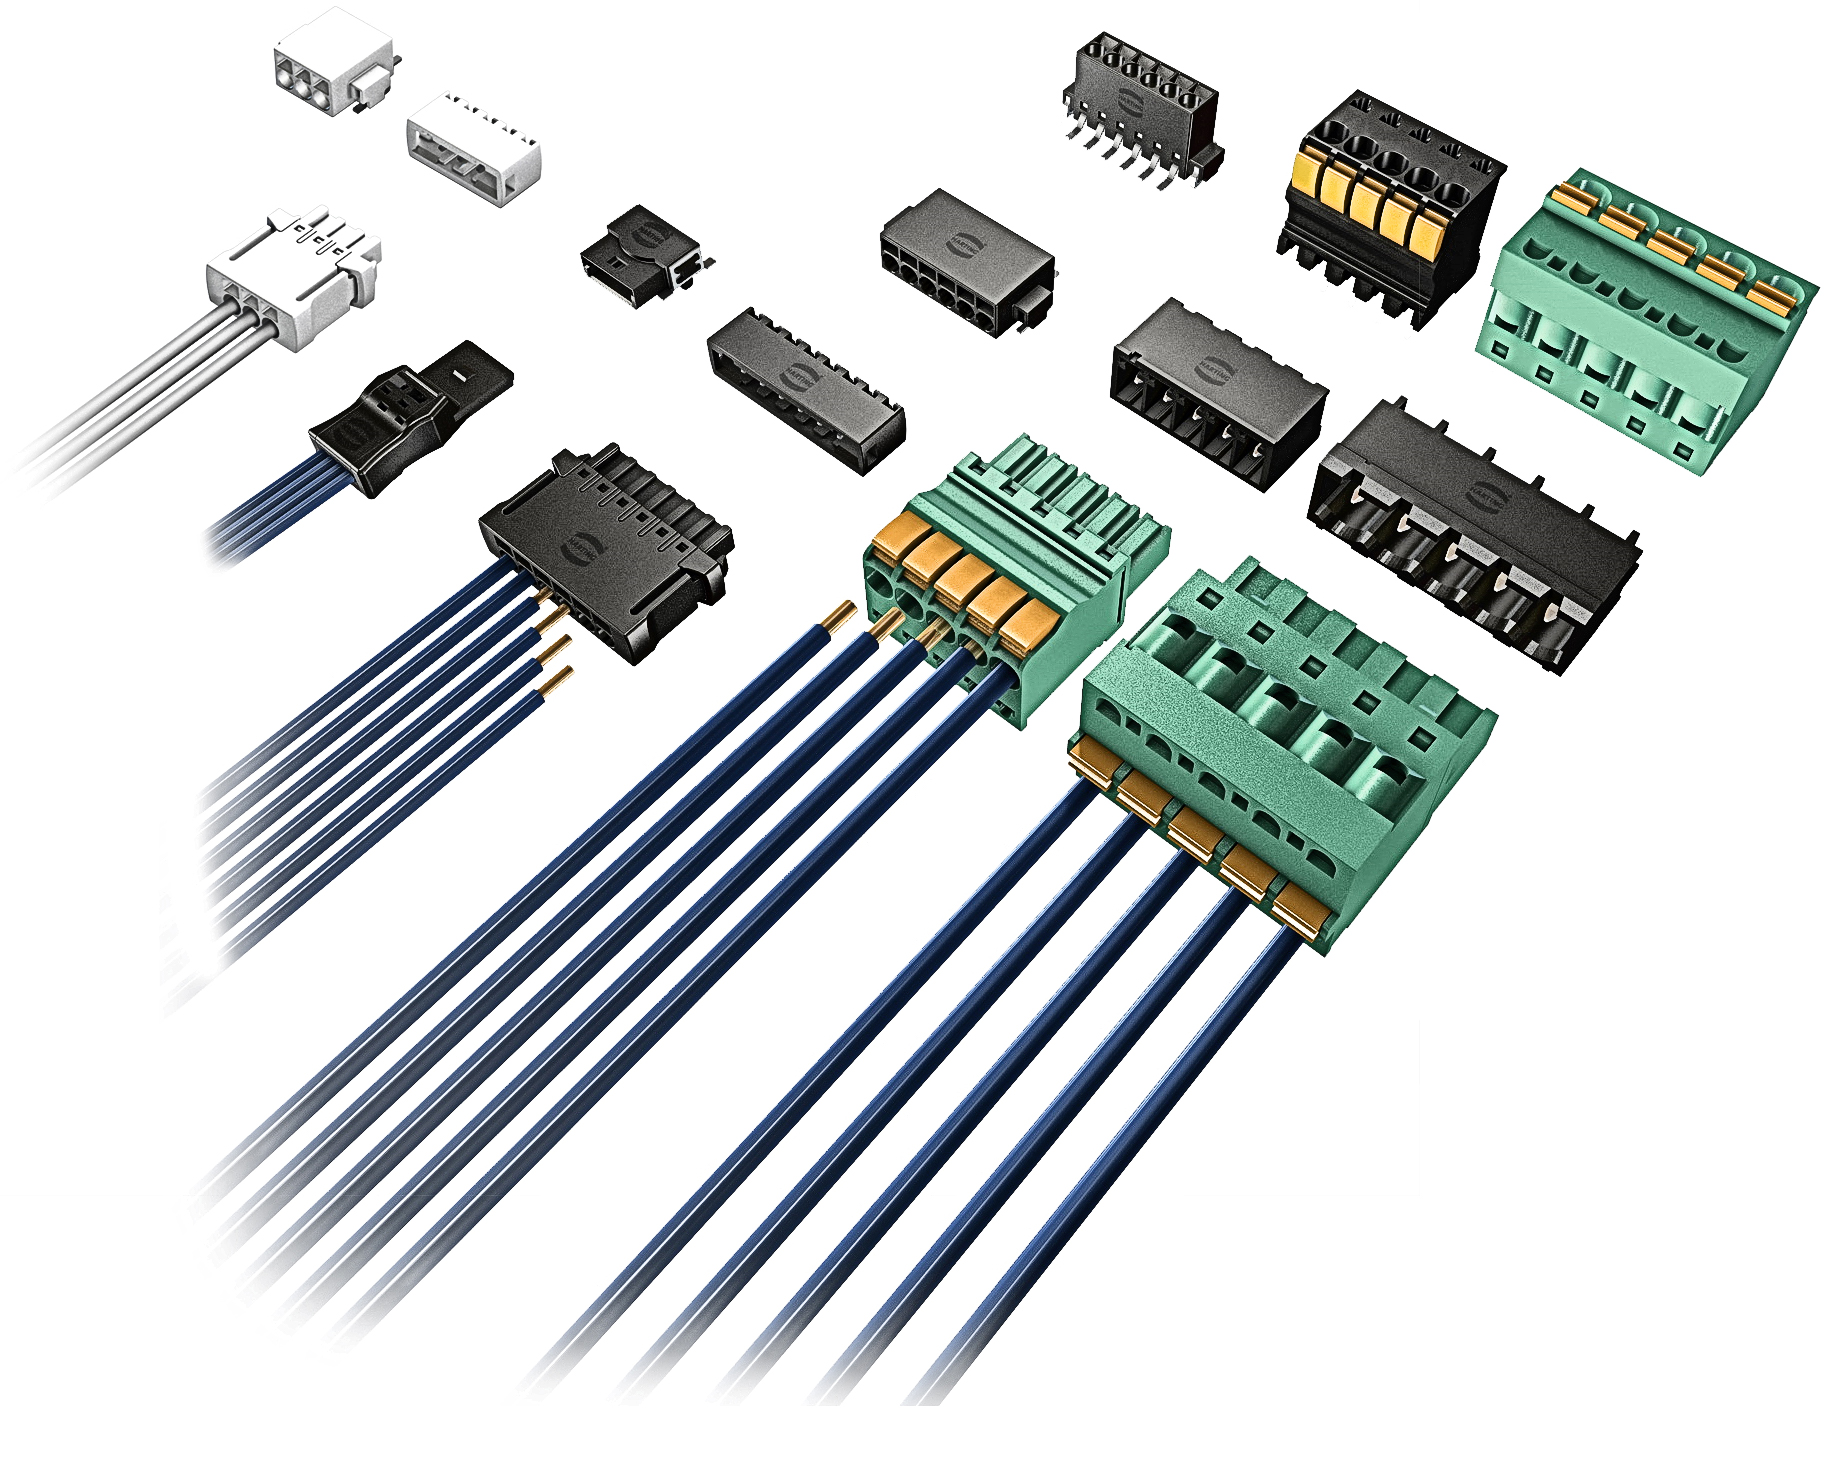 With The Cable On Pcb Har Flexicon Harting Technology Group Solutions Single Supply Shock Vibration Sensor Amplifier Range